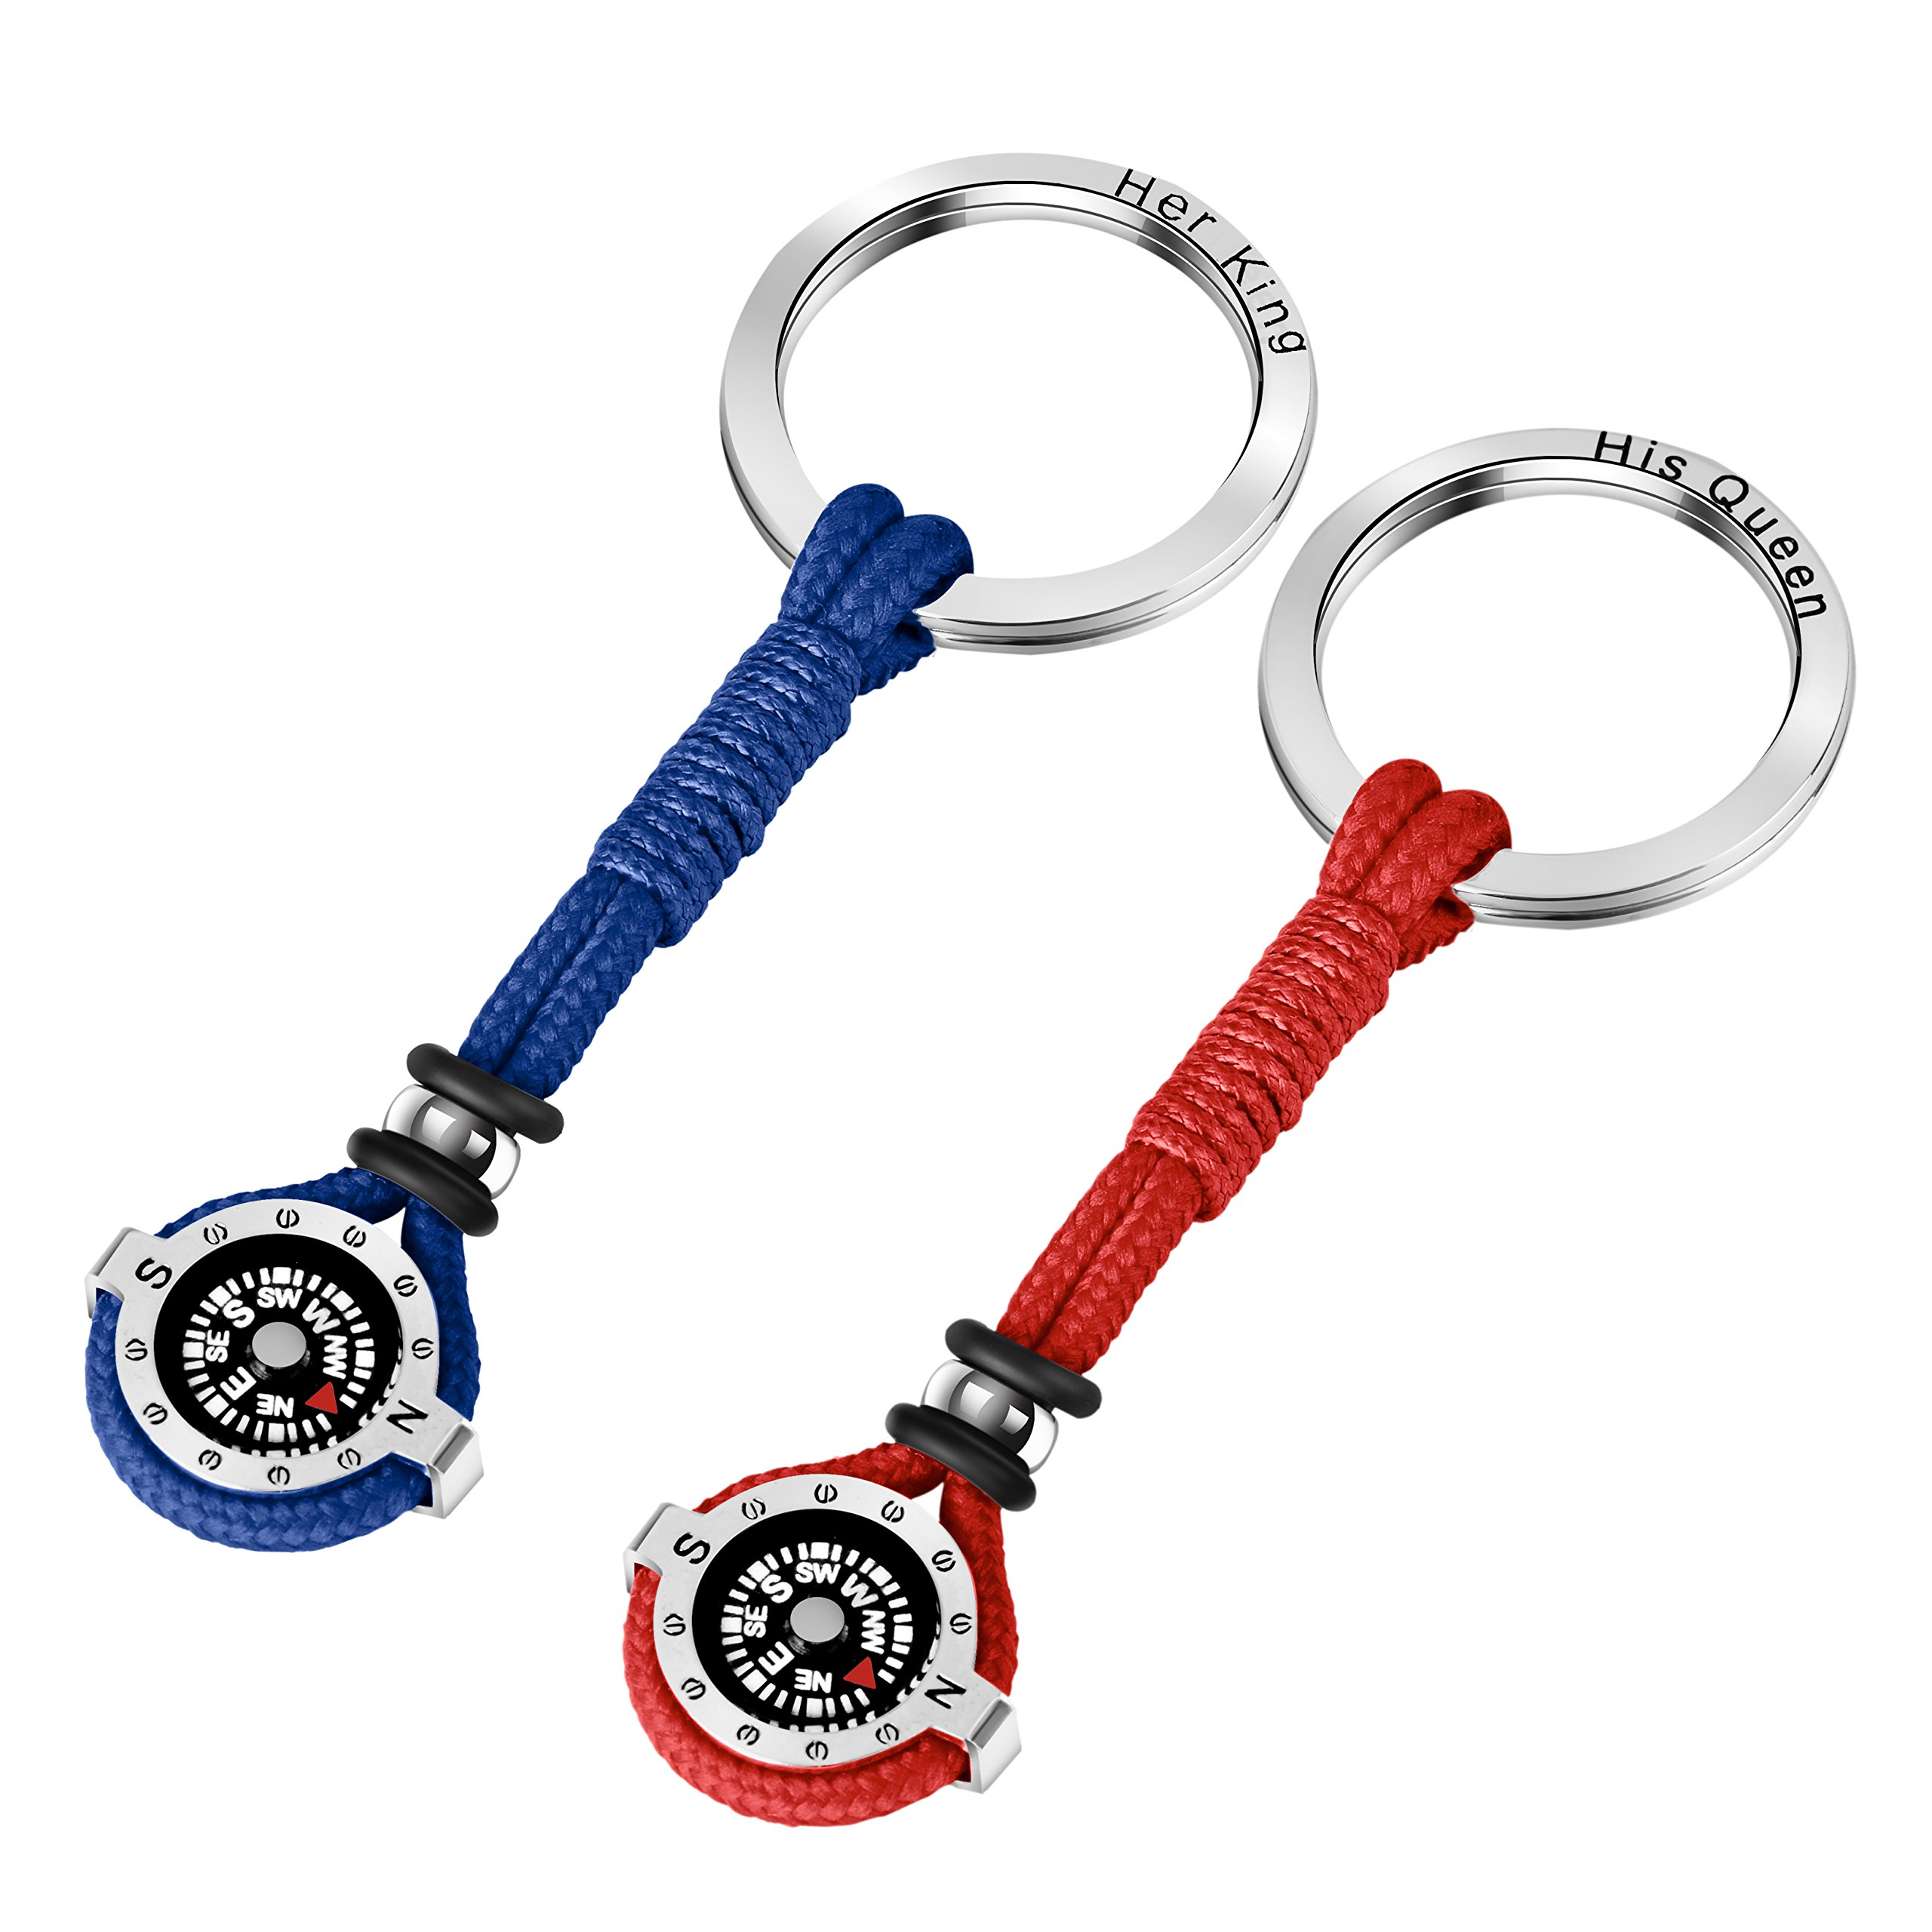 Novelty Compass Keychain for Outdoor Enthusiast, Stylish & Practical, Quality Compass for Hiking, Camping, Luxurious Packaging, Outdoor Gift for outdoorsman, Gift for Hikers, Campers, for Backpackers